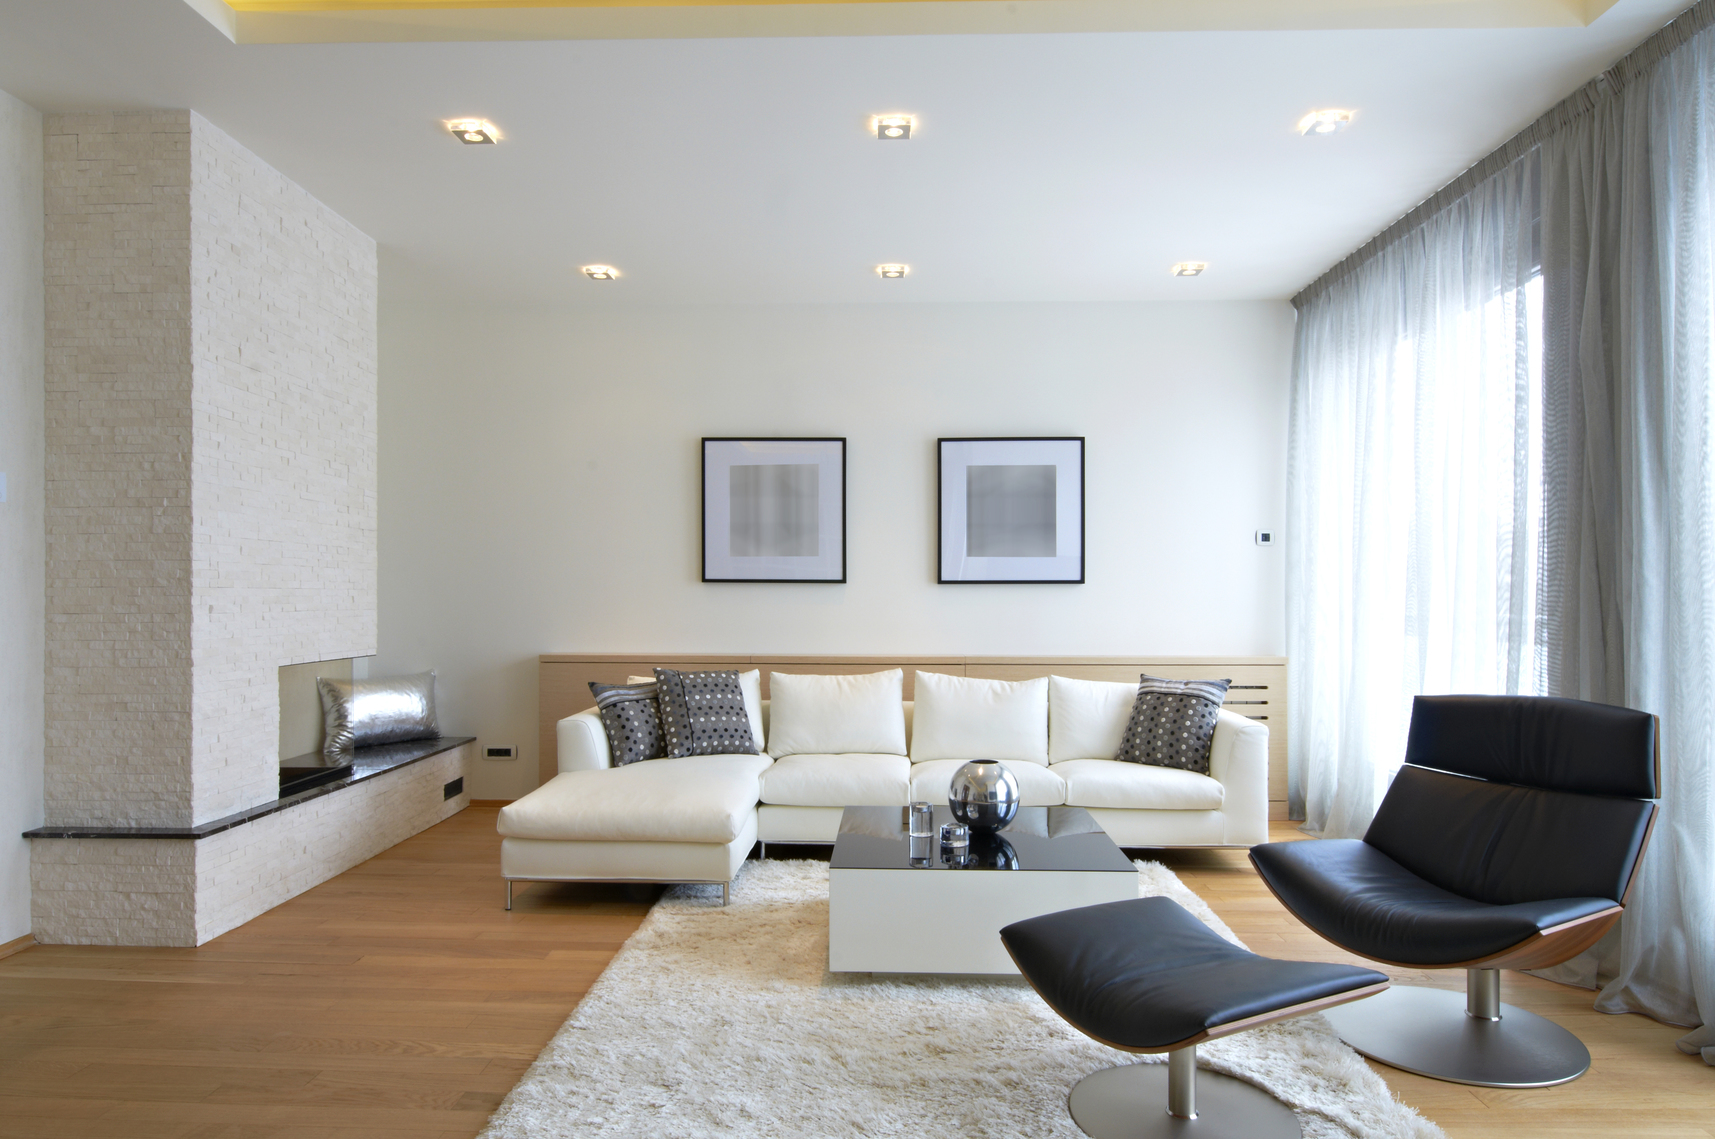 3 Easy Design Ideas to Update the Look of Your Room